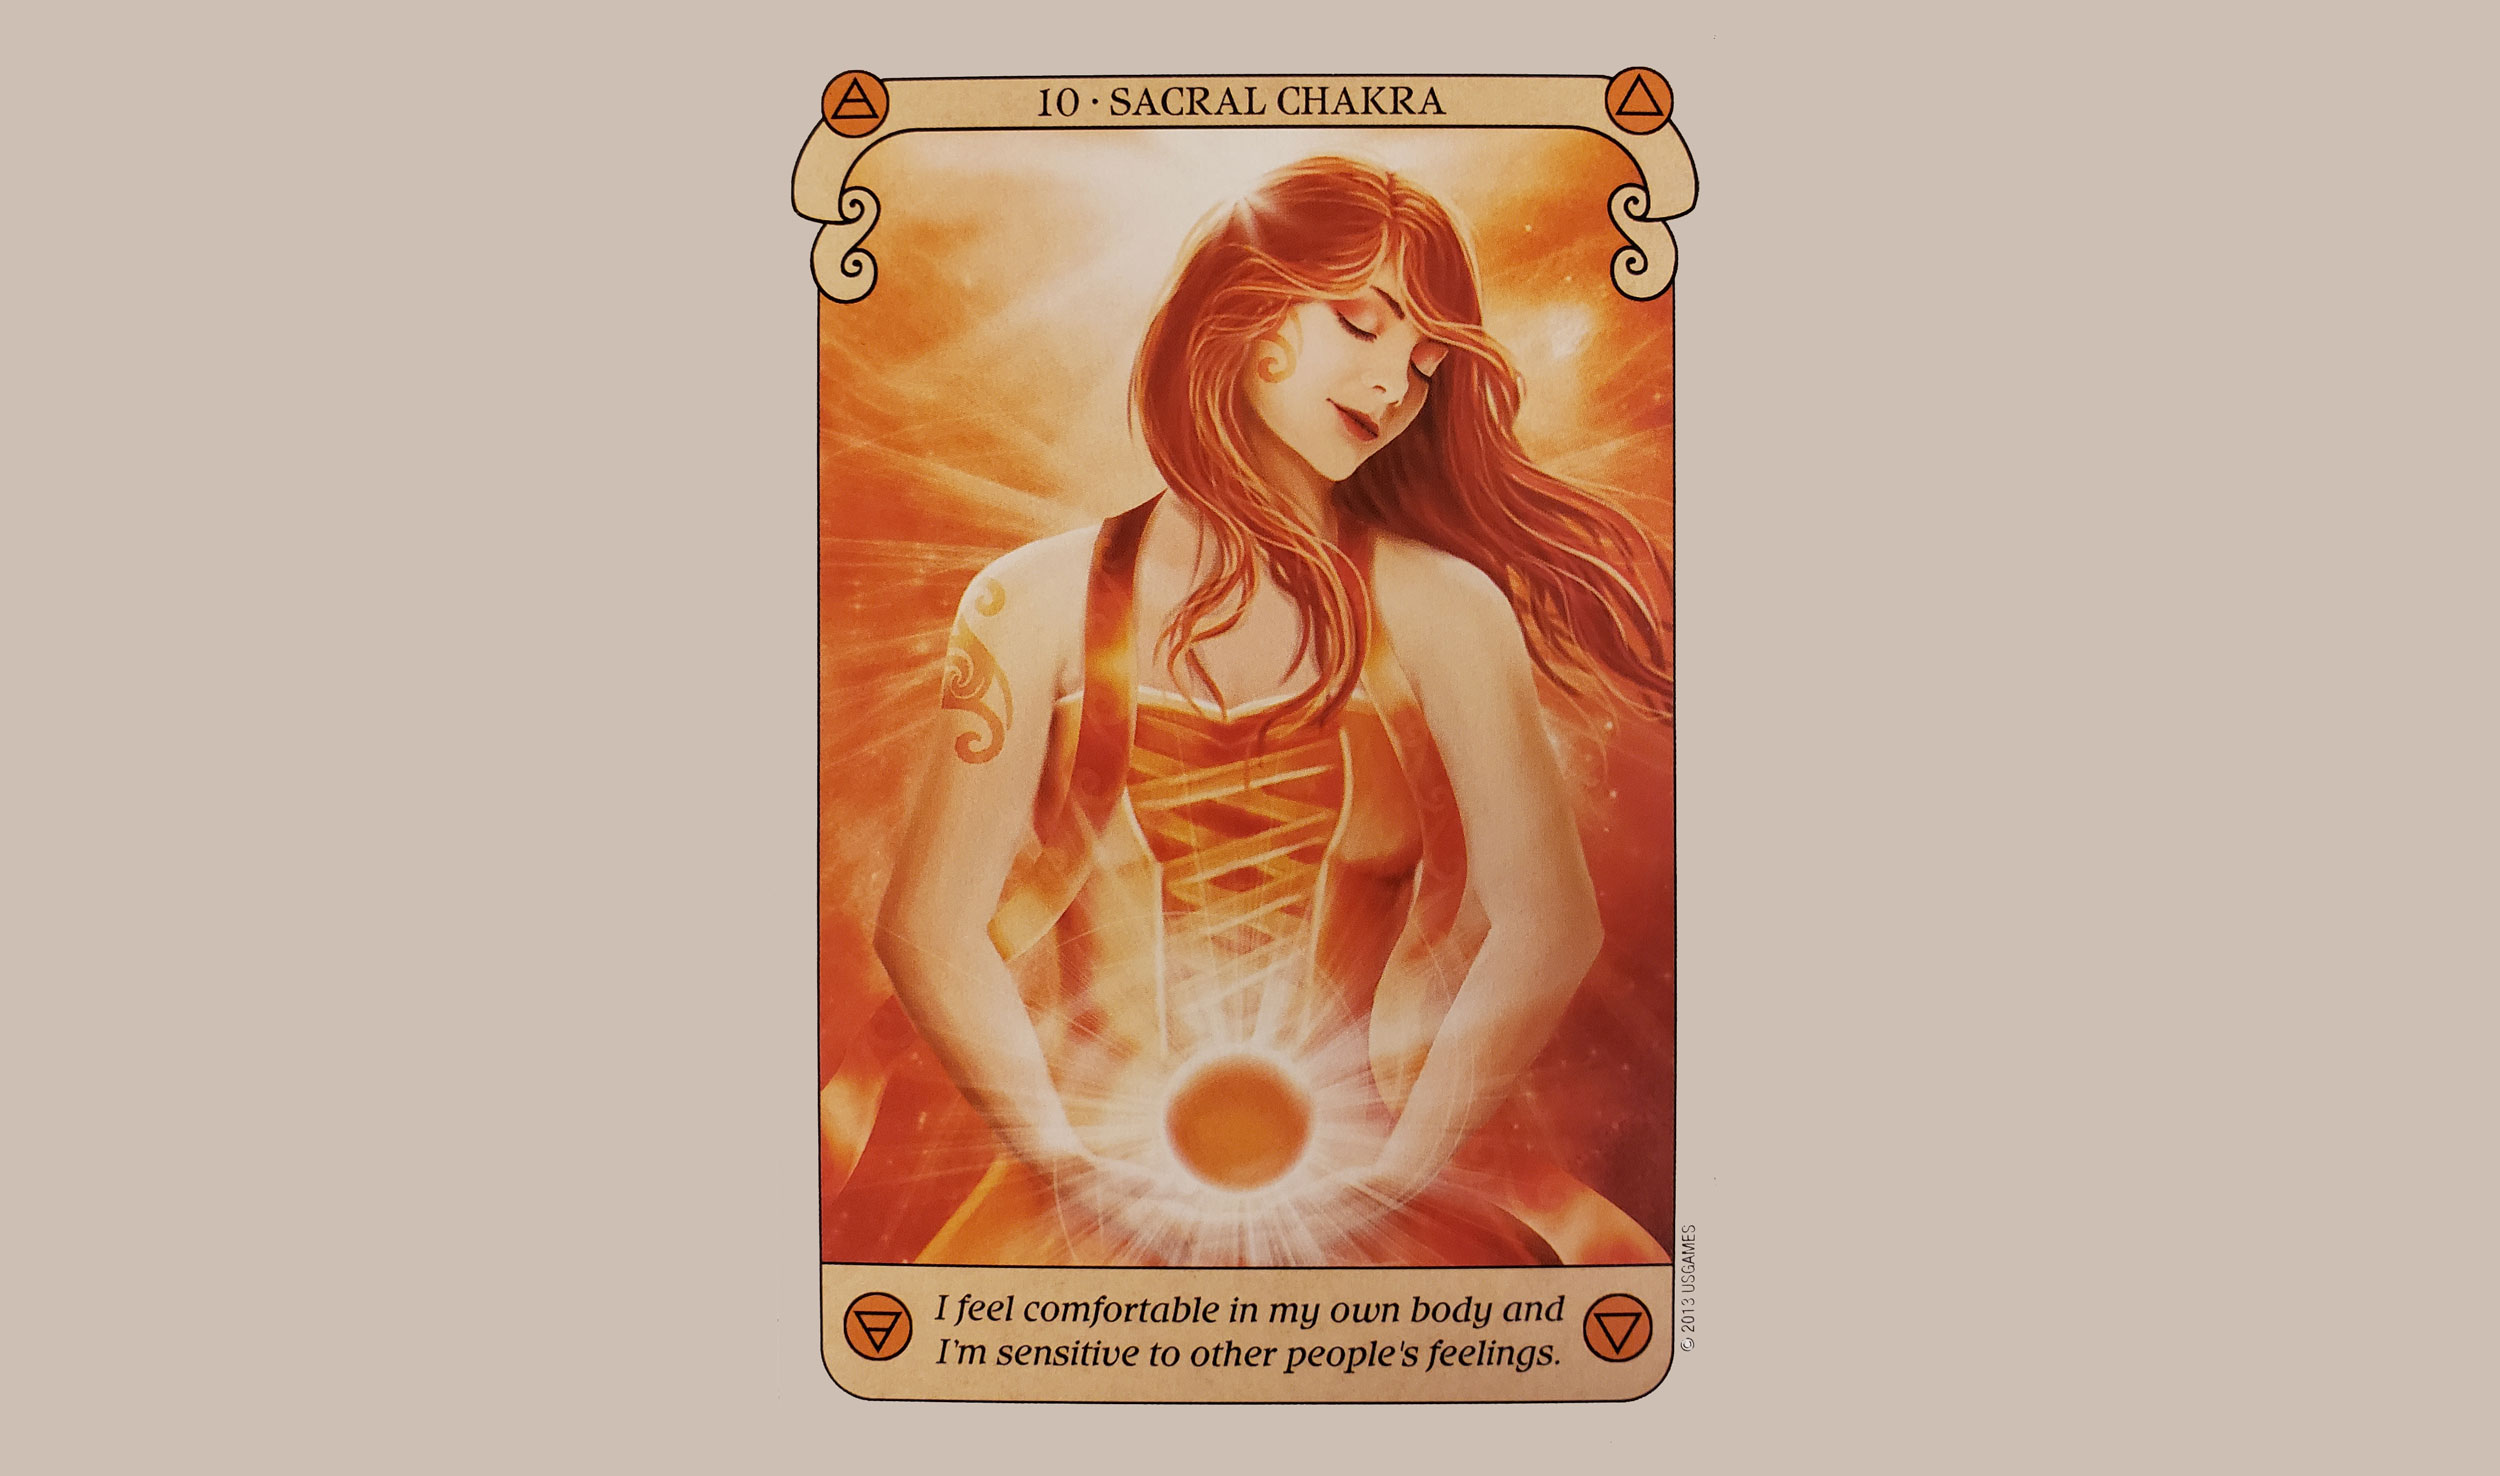 Conscious Spirit Oracle Deck Copyright (c) 2013 US Games Systems Inc. Used with permission.